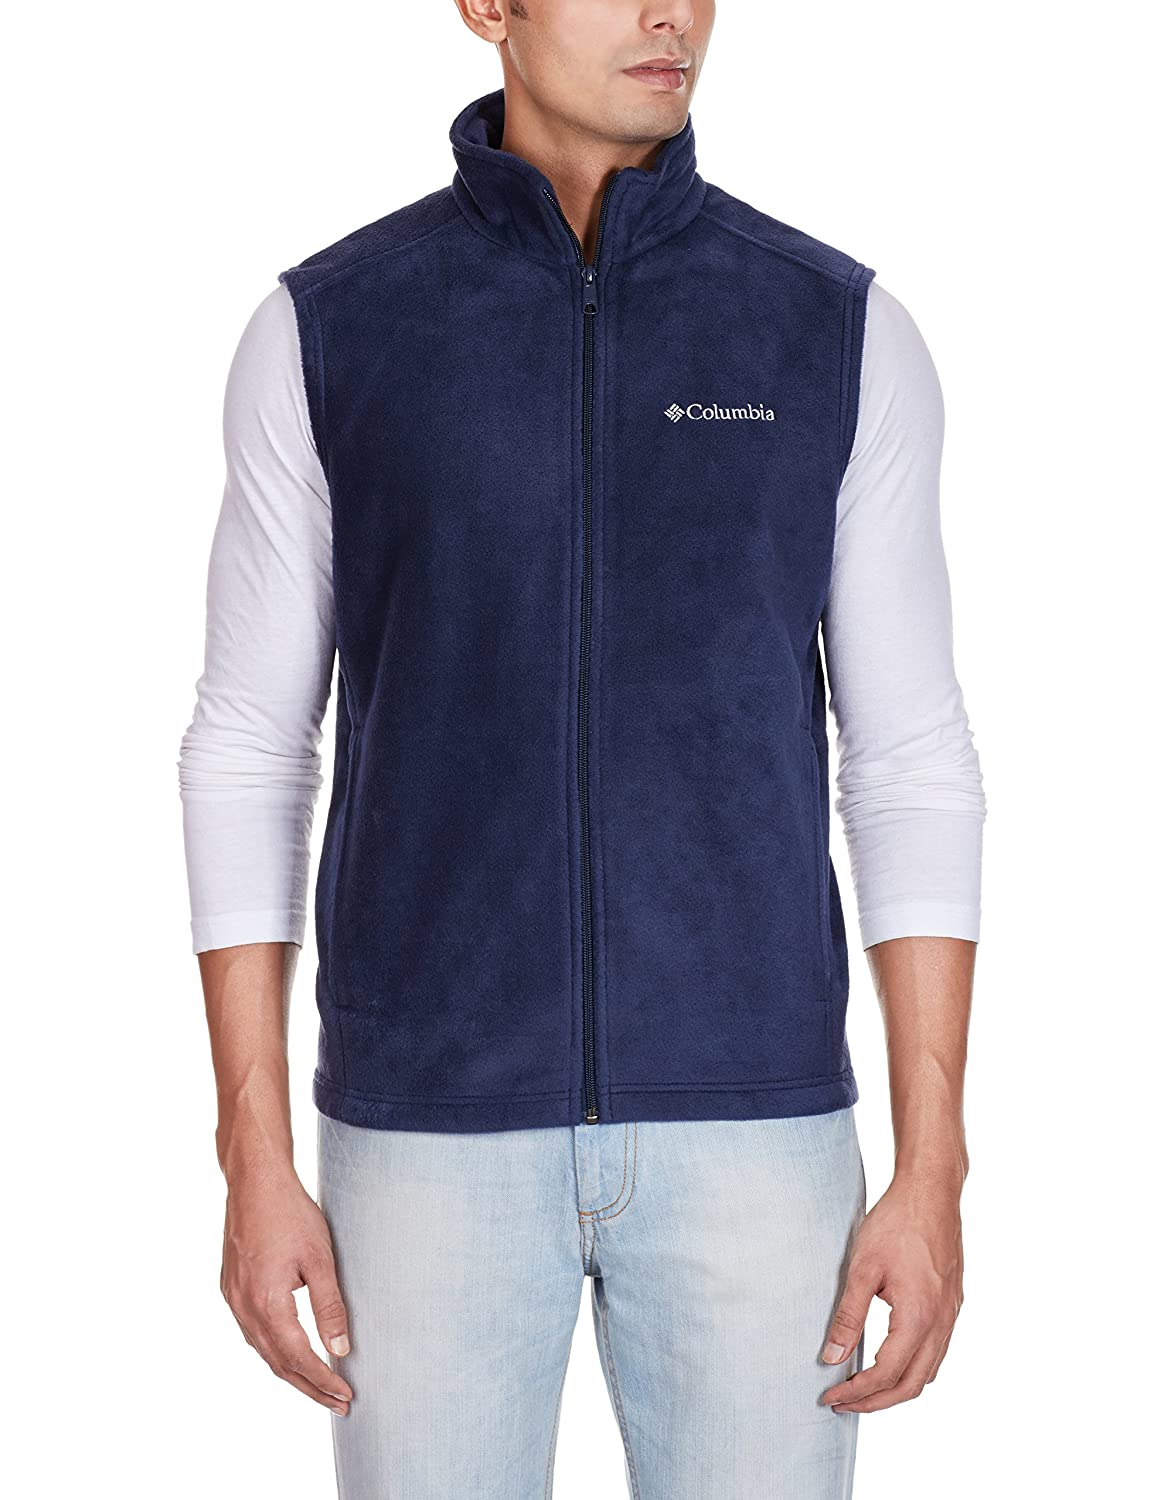 Columbia Men's Cathedral Peak Front-Zip Fleece Vest Columbia Men's Sportswear 1519151